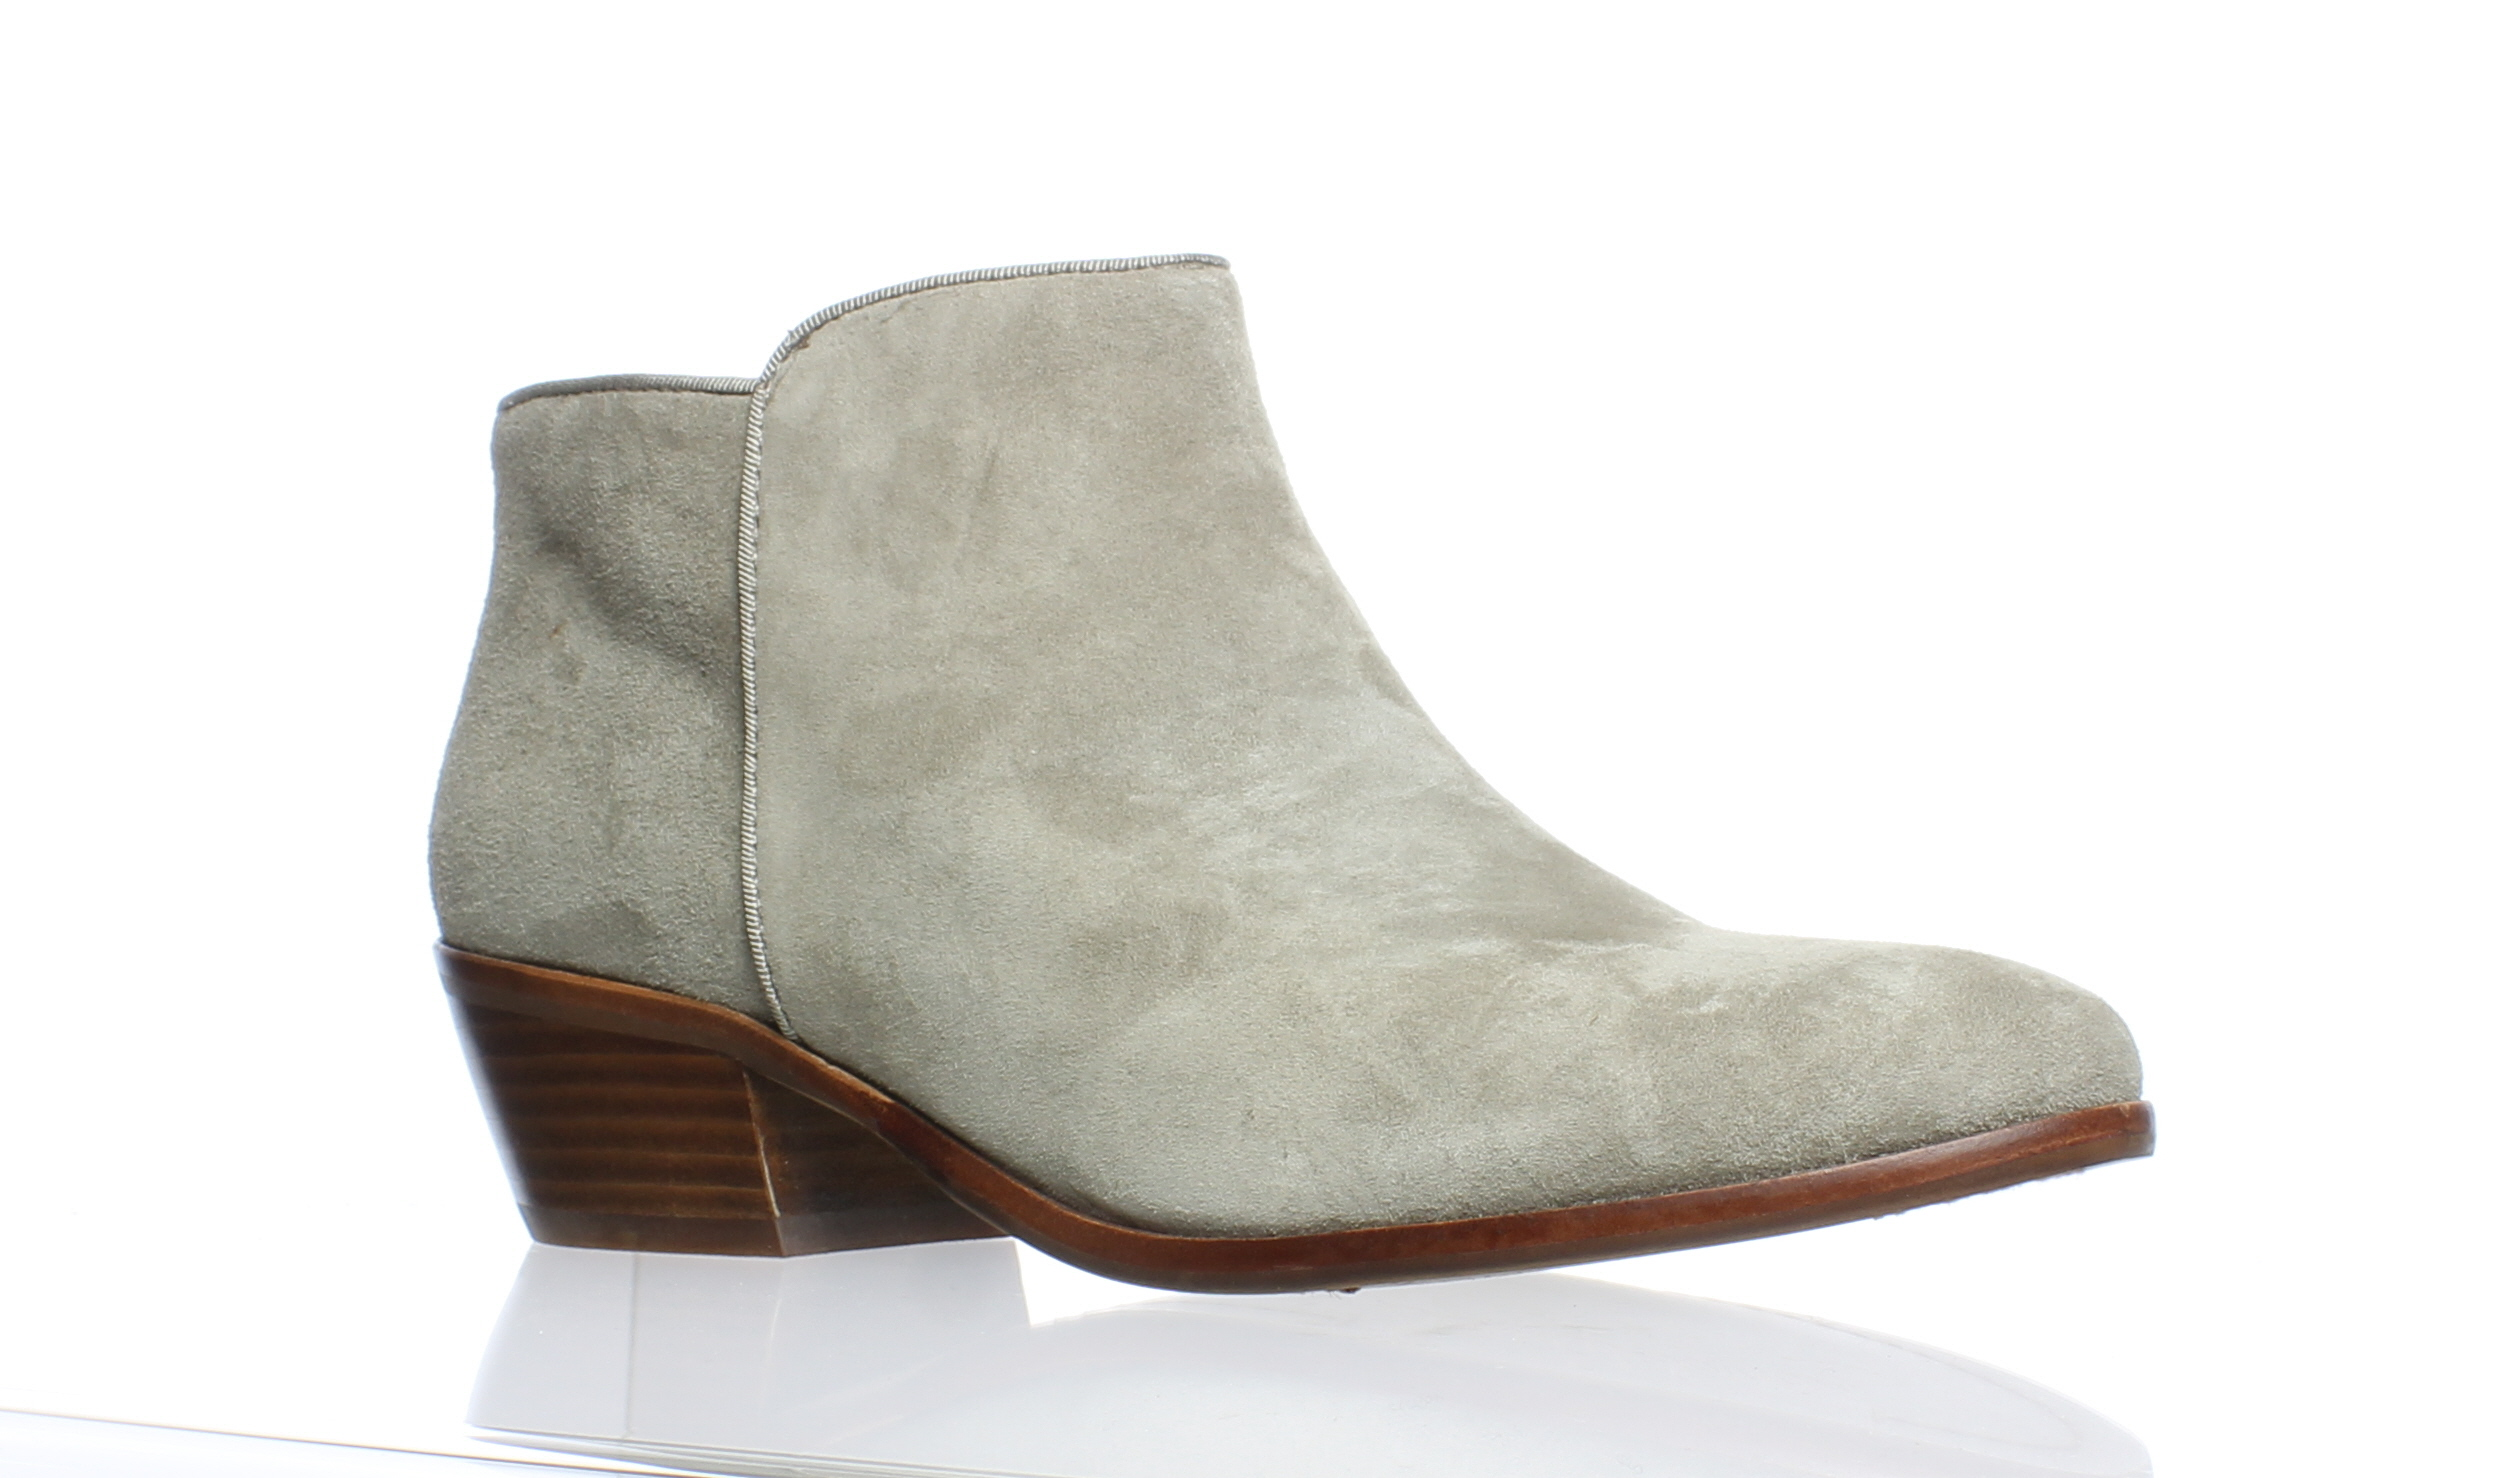 f425accf81dc79 Sam Edelman Womens Petty Putty Suede Ankle Boots Size 7 (173966 ...